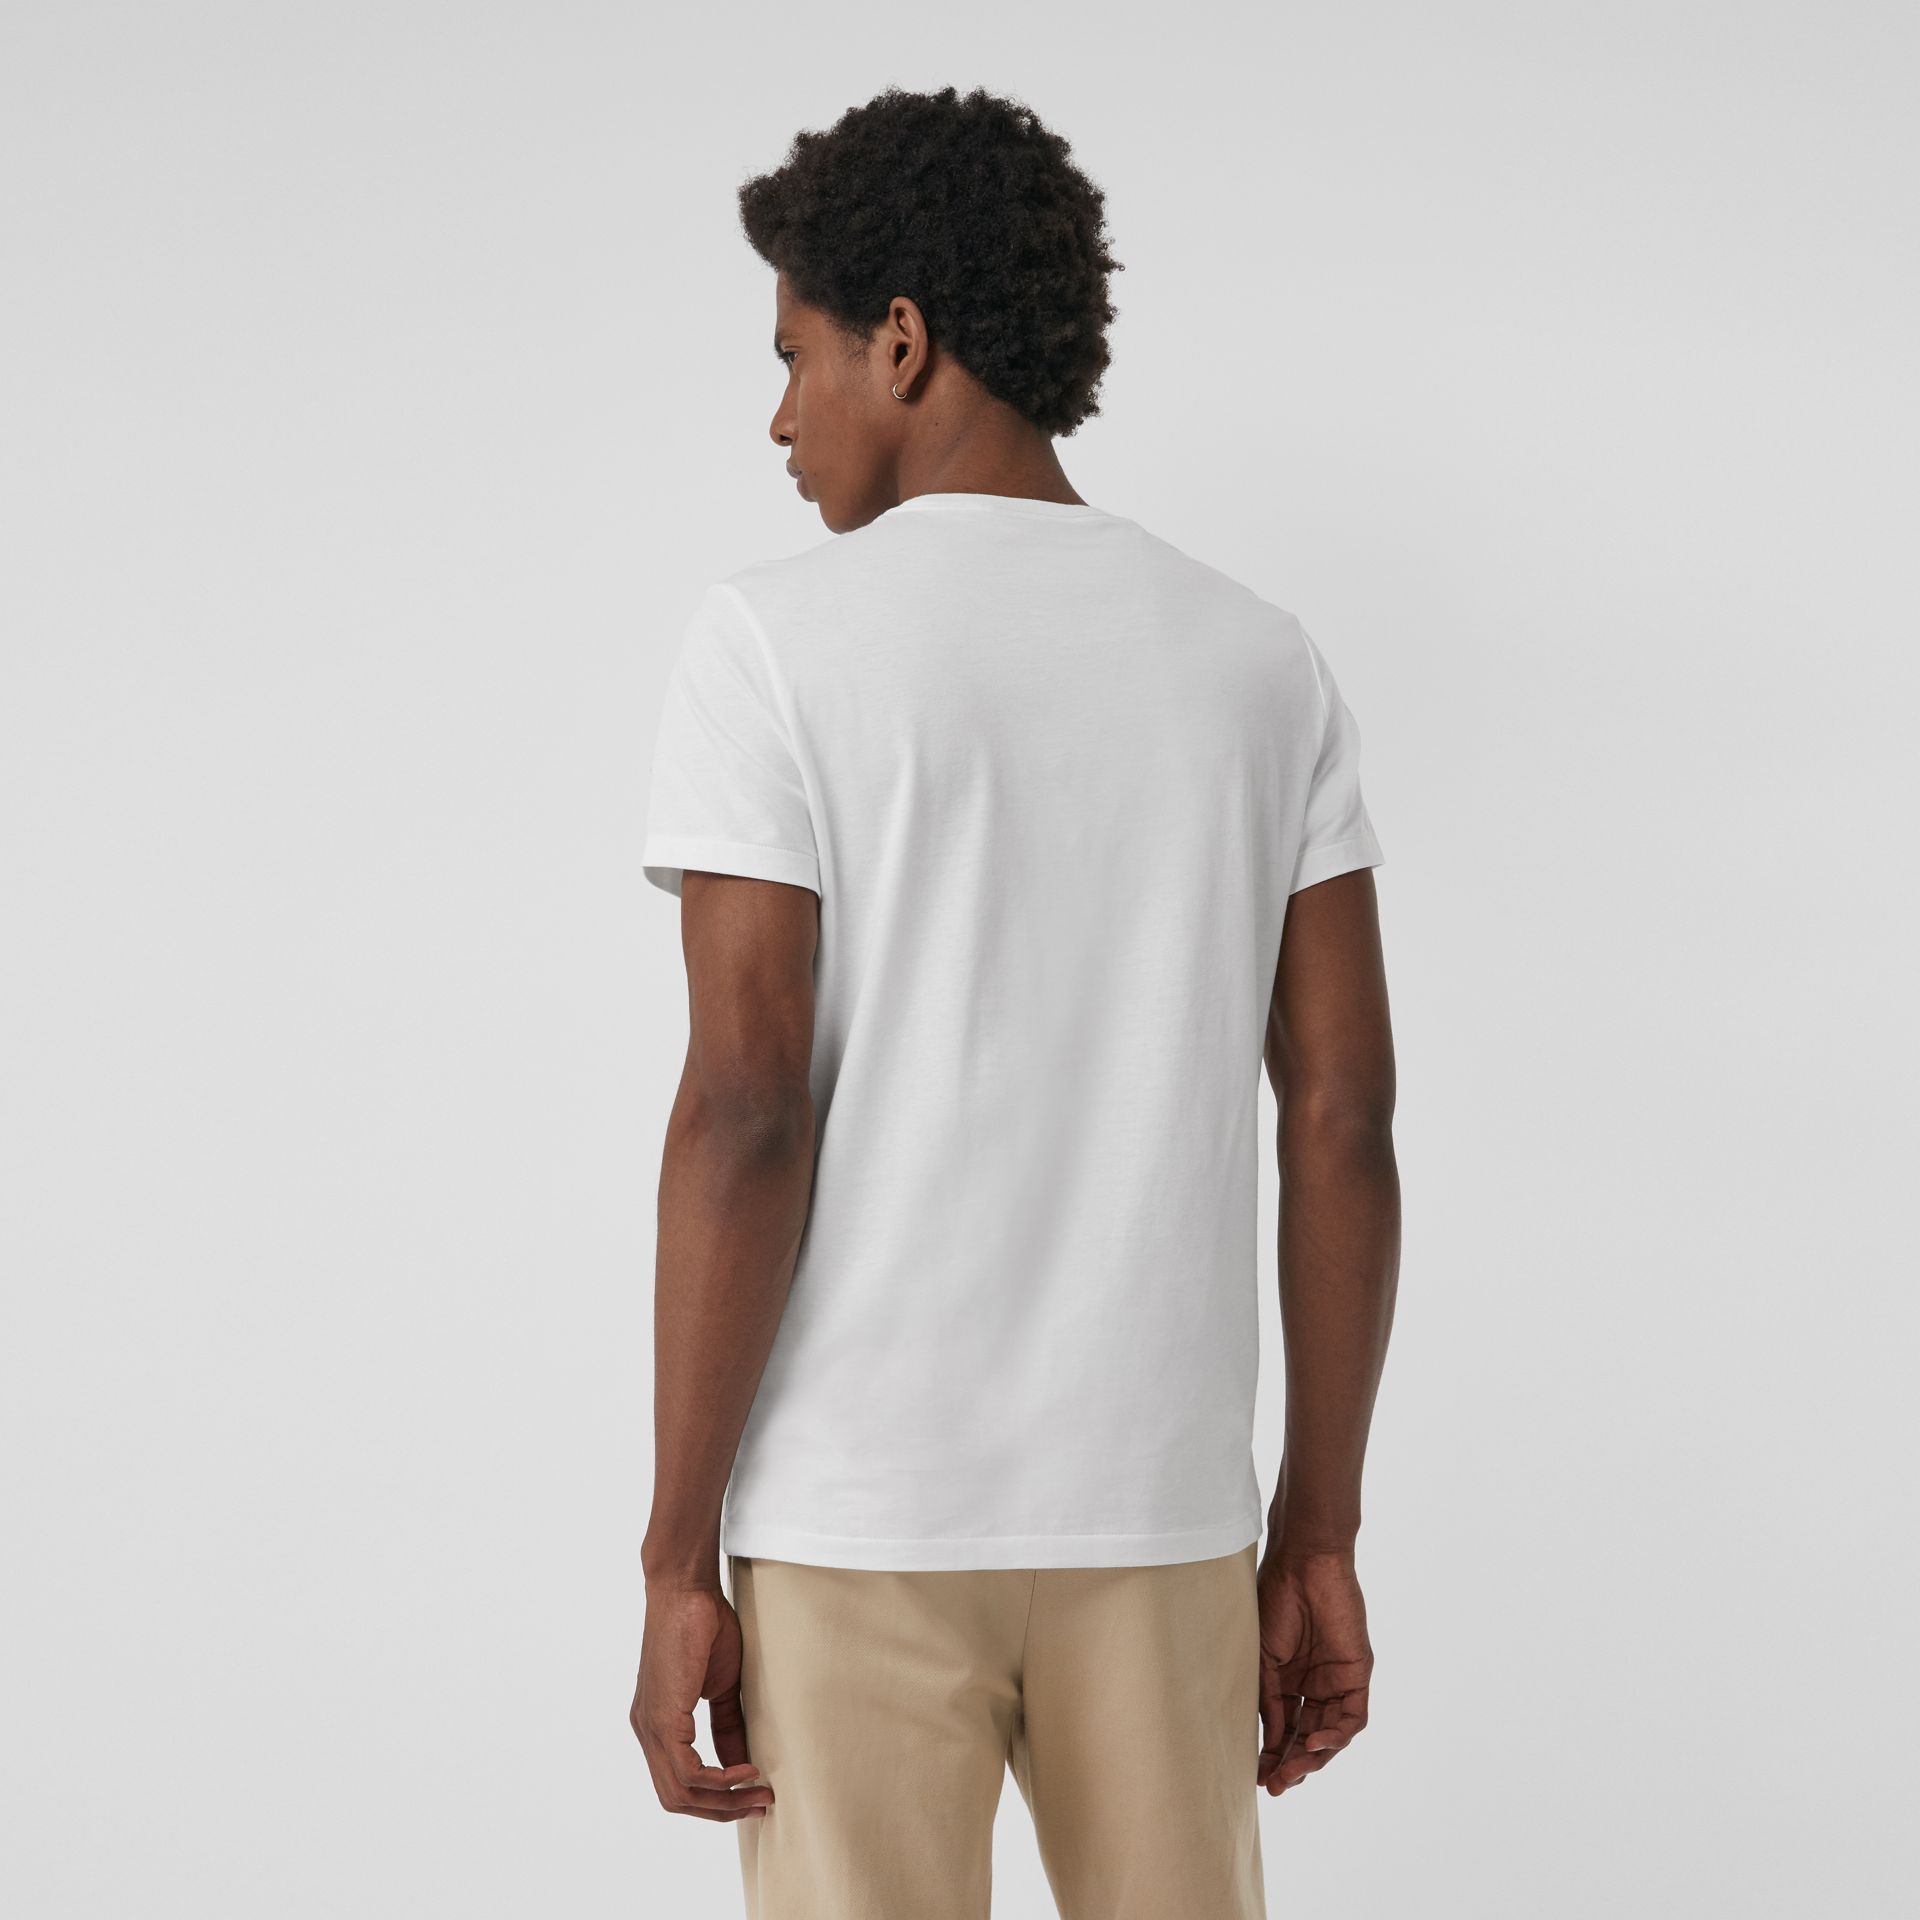 Cotton Jersey T-shirt in White - Men | Burberry Canada - gallery image 2